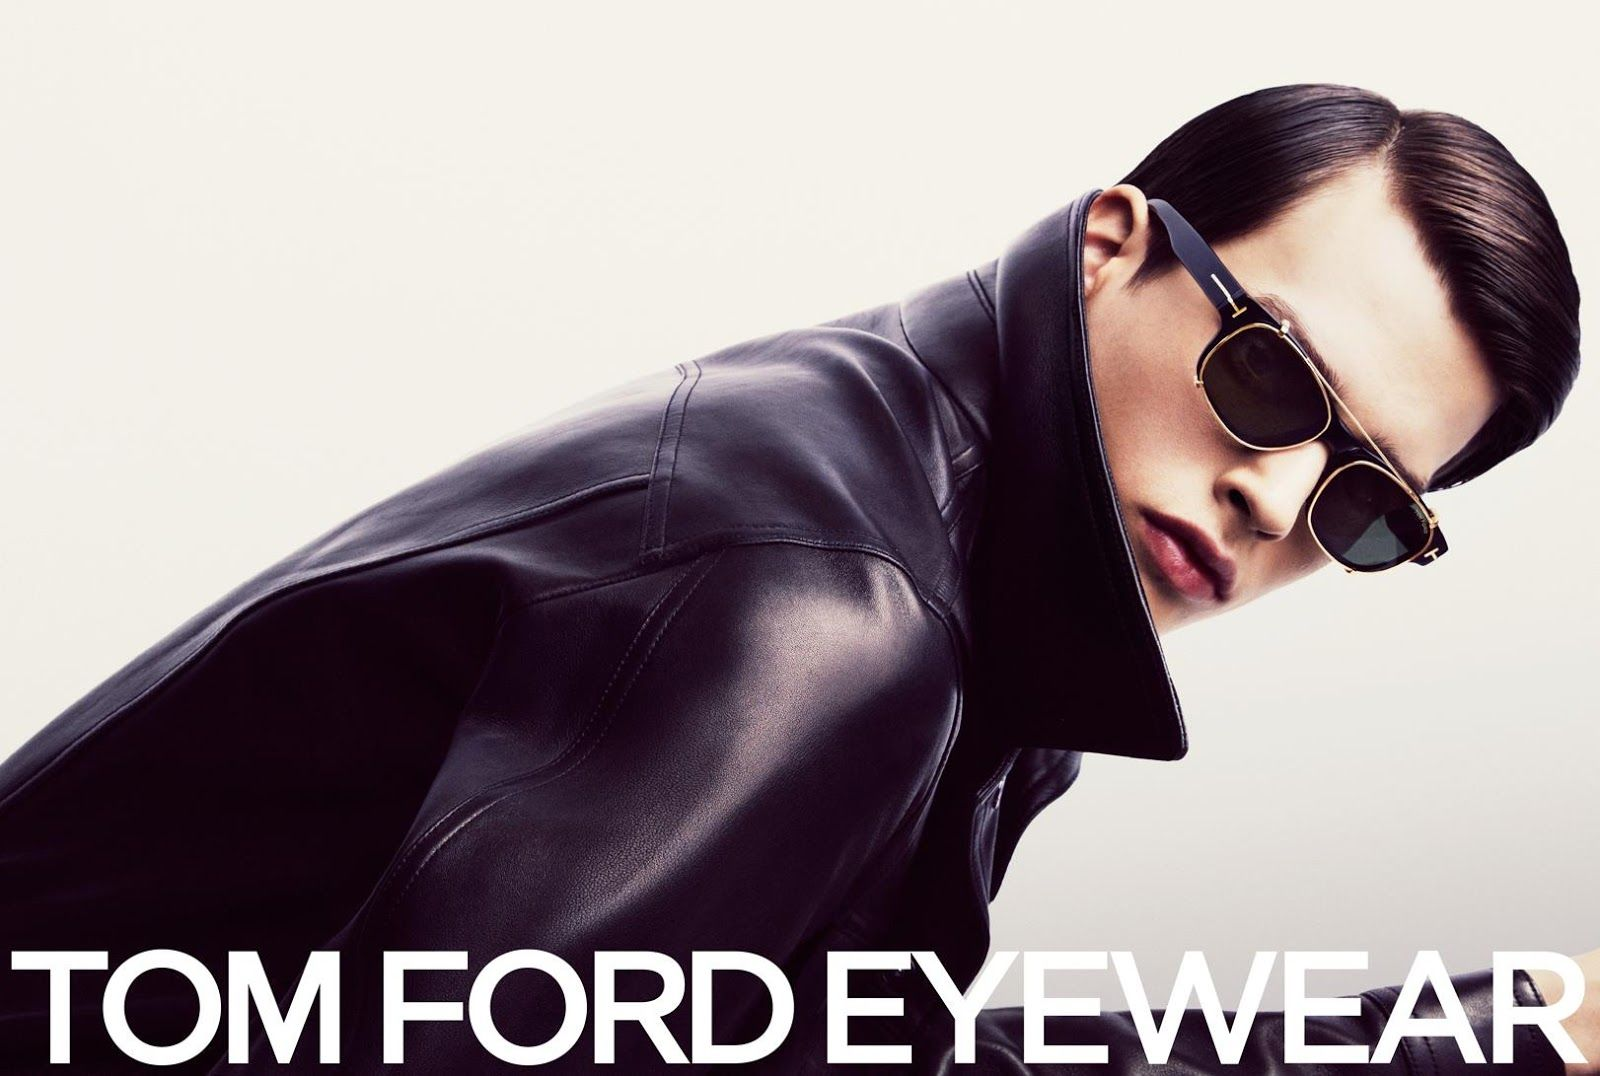 Karlina Caune & Simon Van Meervenne for Tom Ford SS 2013-004